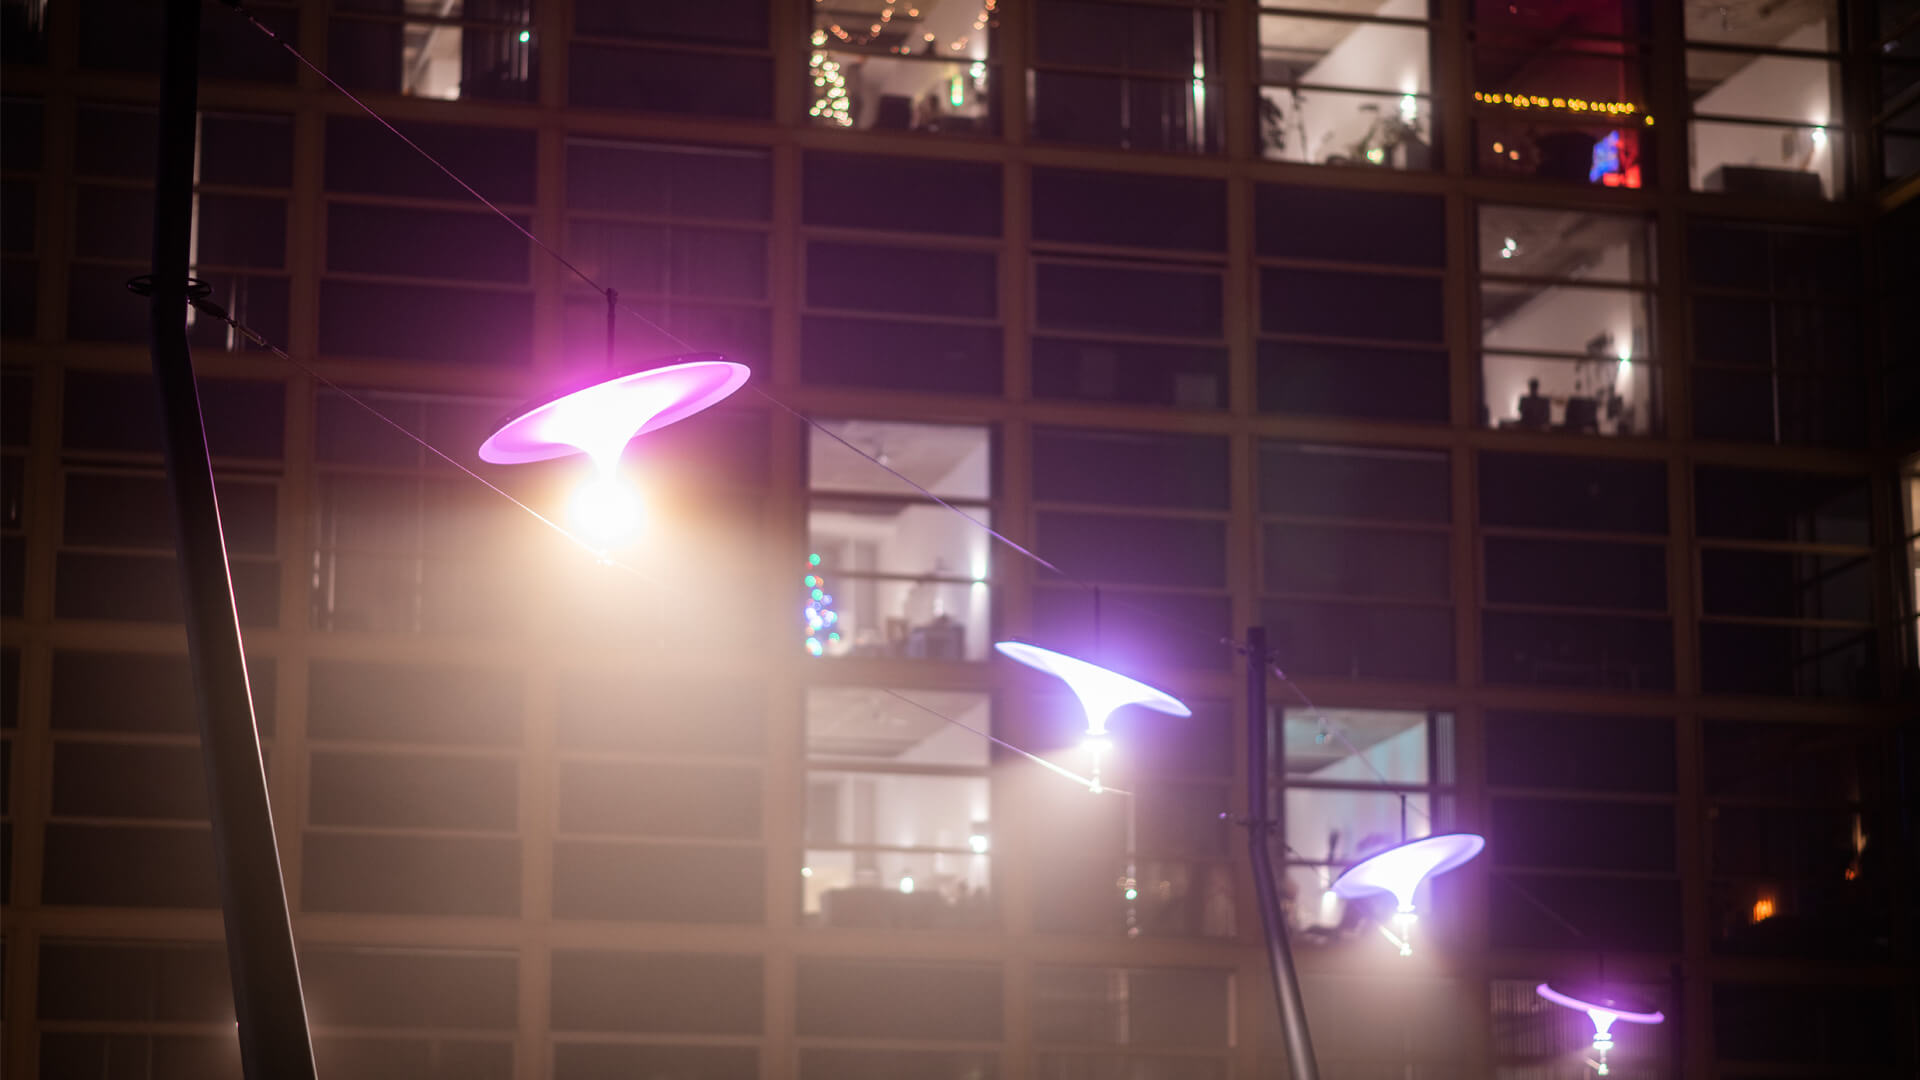 'Sunseeker' by Vantot rethinks static street-lights while dynamically following the sun